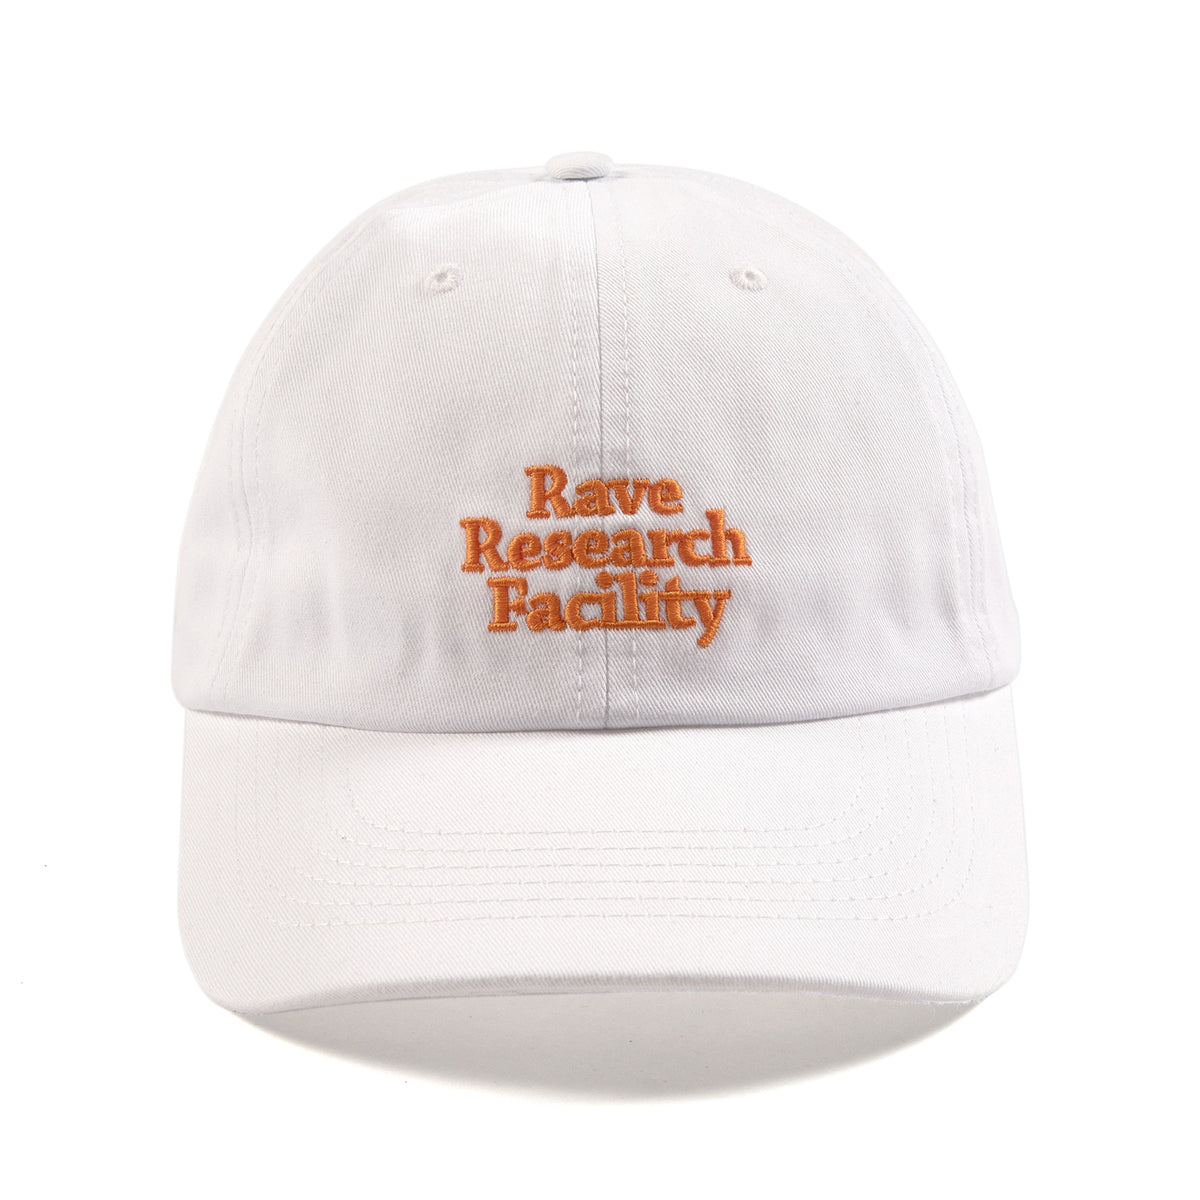 RAVE RESEARCH FACILITY white cap - RAVE skateboards